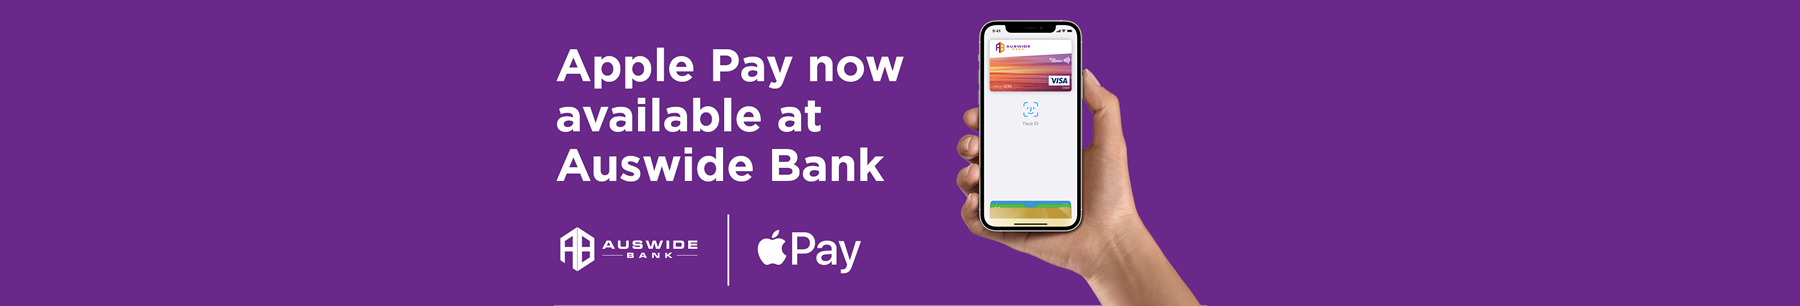 Apple Pay now available at Auswide Bank!